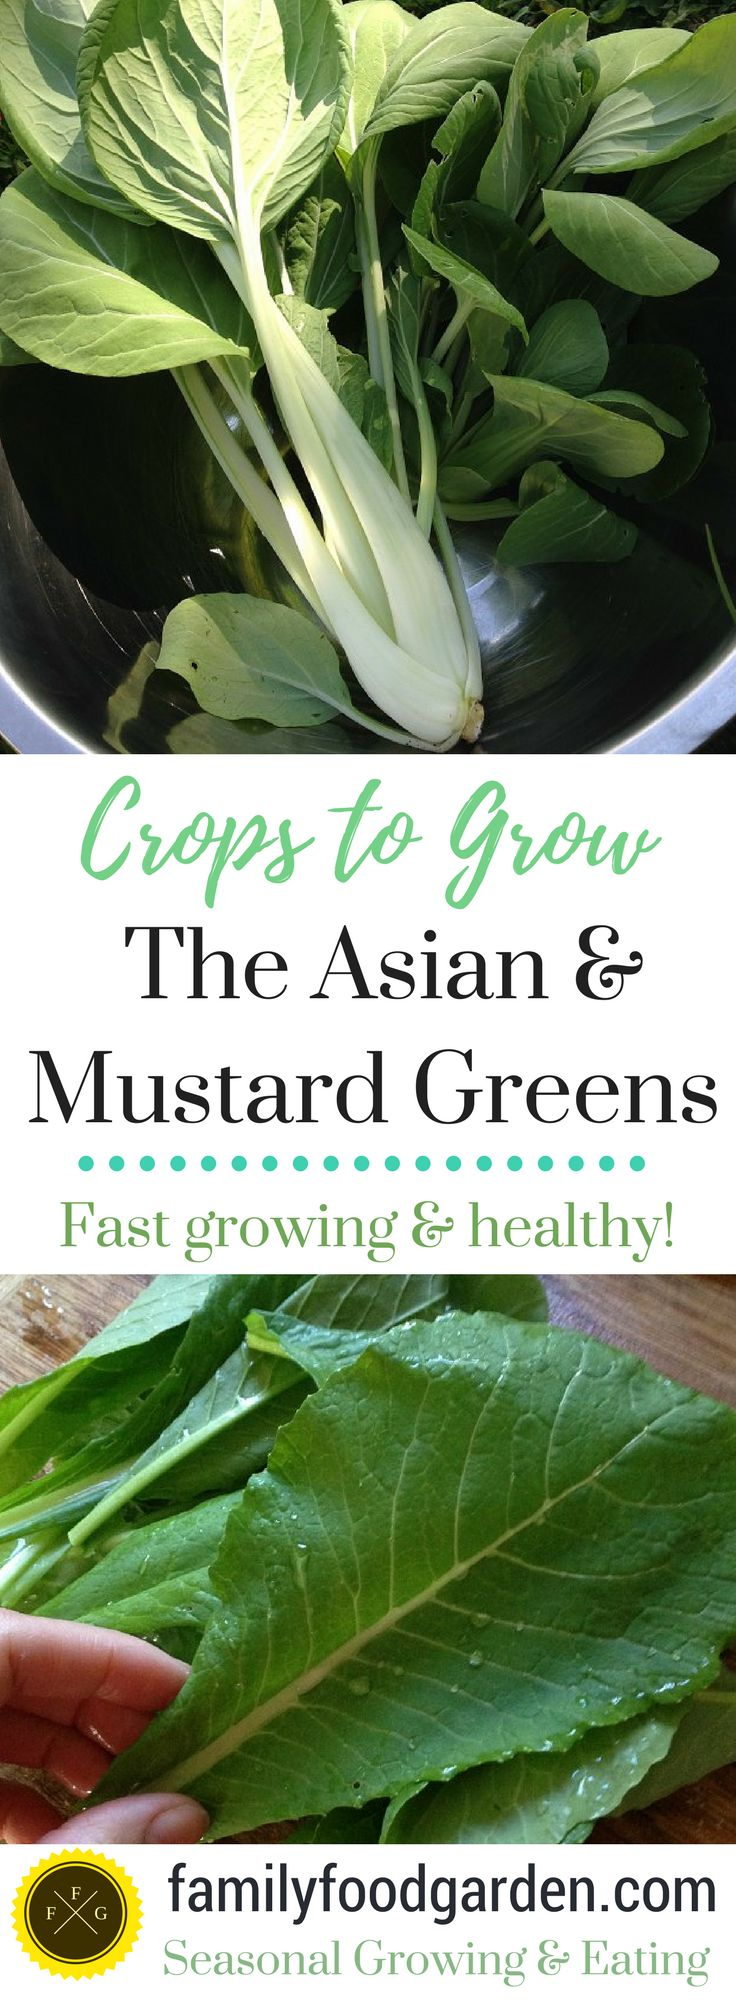 Oh I love fast-food! Fast garden food that is. Any veggies that we can eat within 30-45 days of harvesting is a huge bonus to home food production. Quick crops offer better yield per growing space and dollar value for your efforts.  Today I wanted to talk about 5 asian and mustards greens, that a